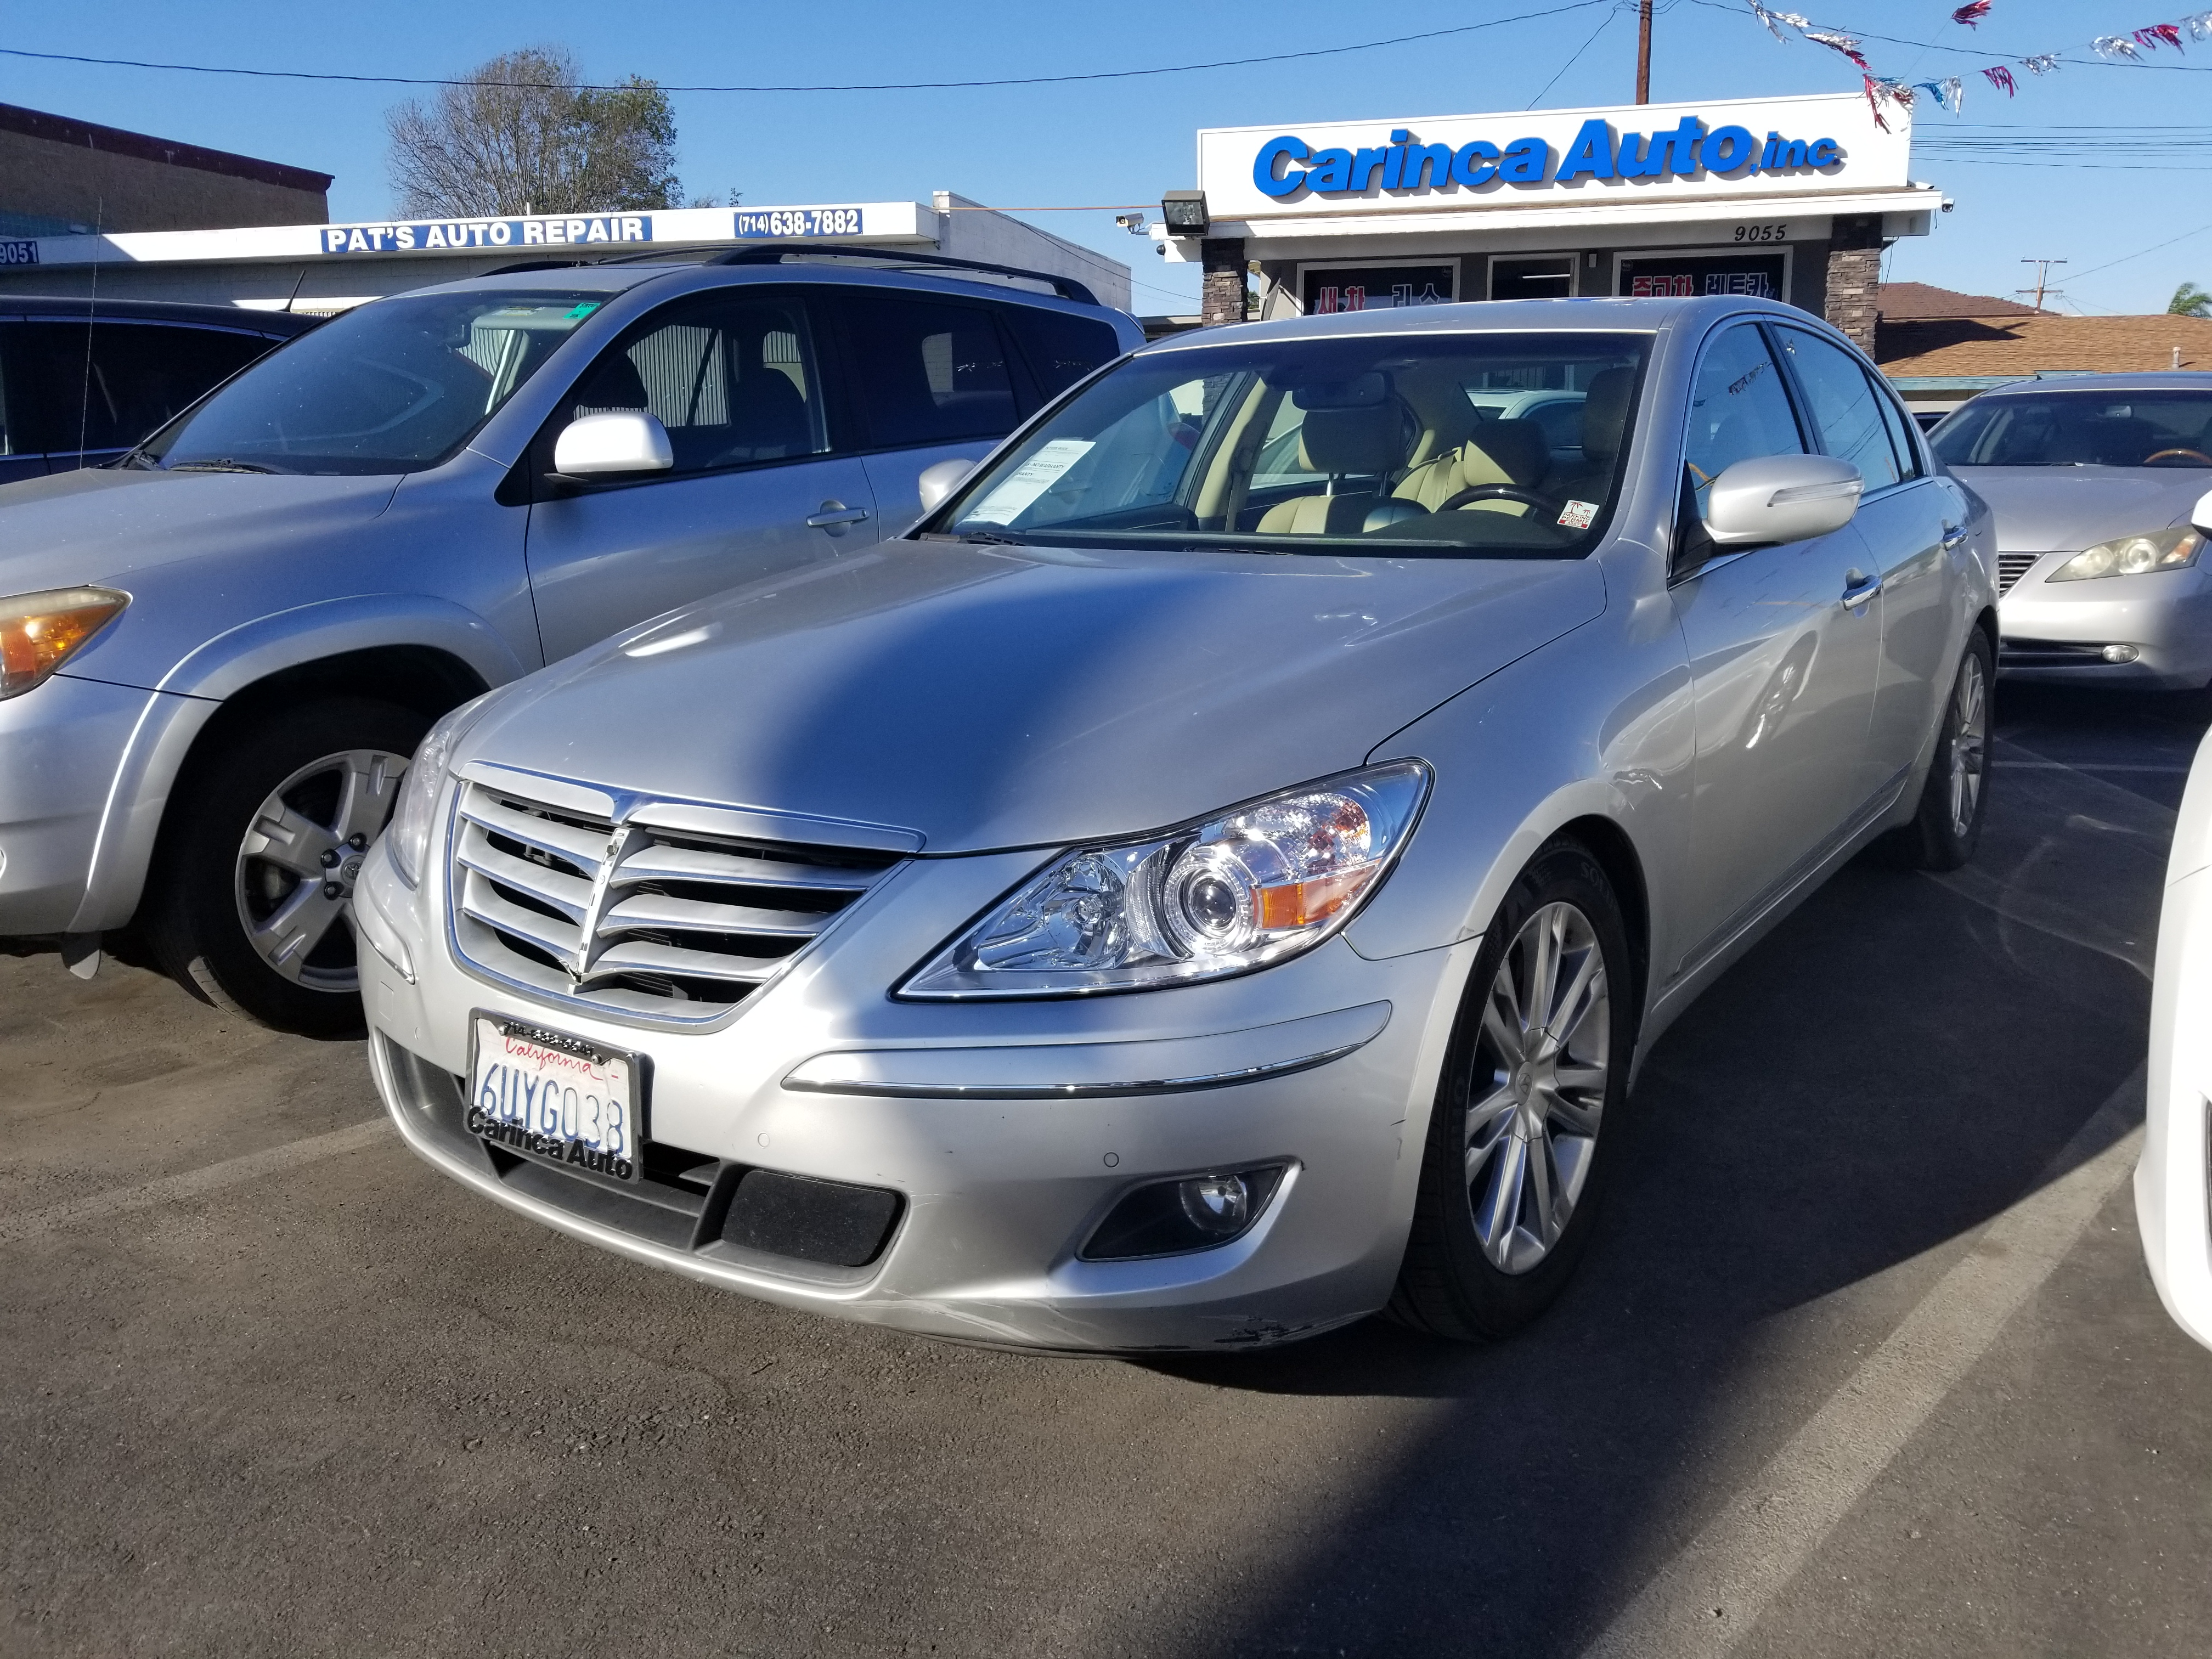 gocarinca - Browse used cars and new cars online